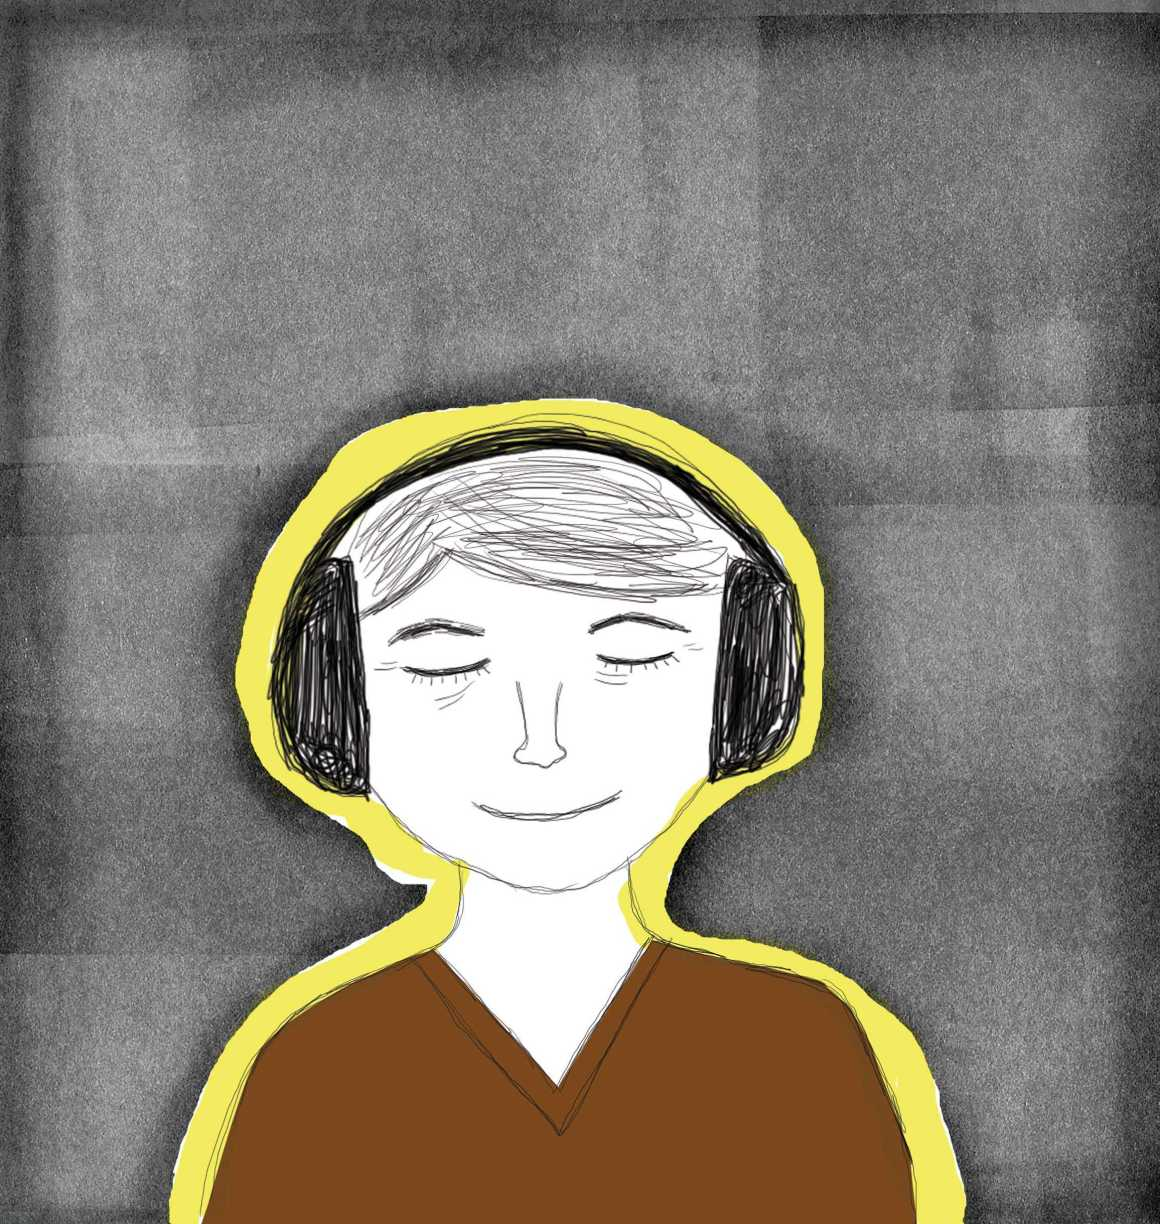 Studying with music: helpful or not?